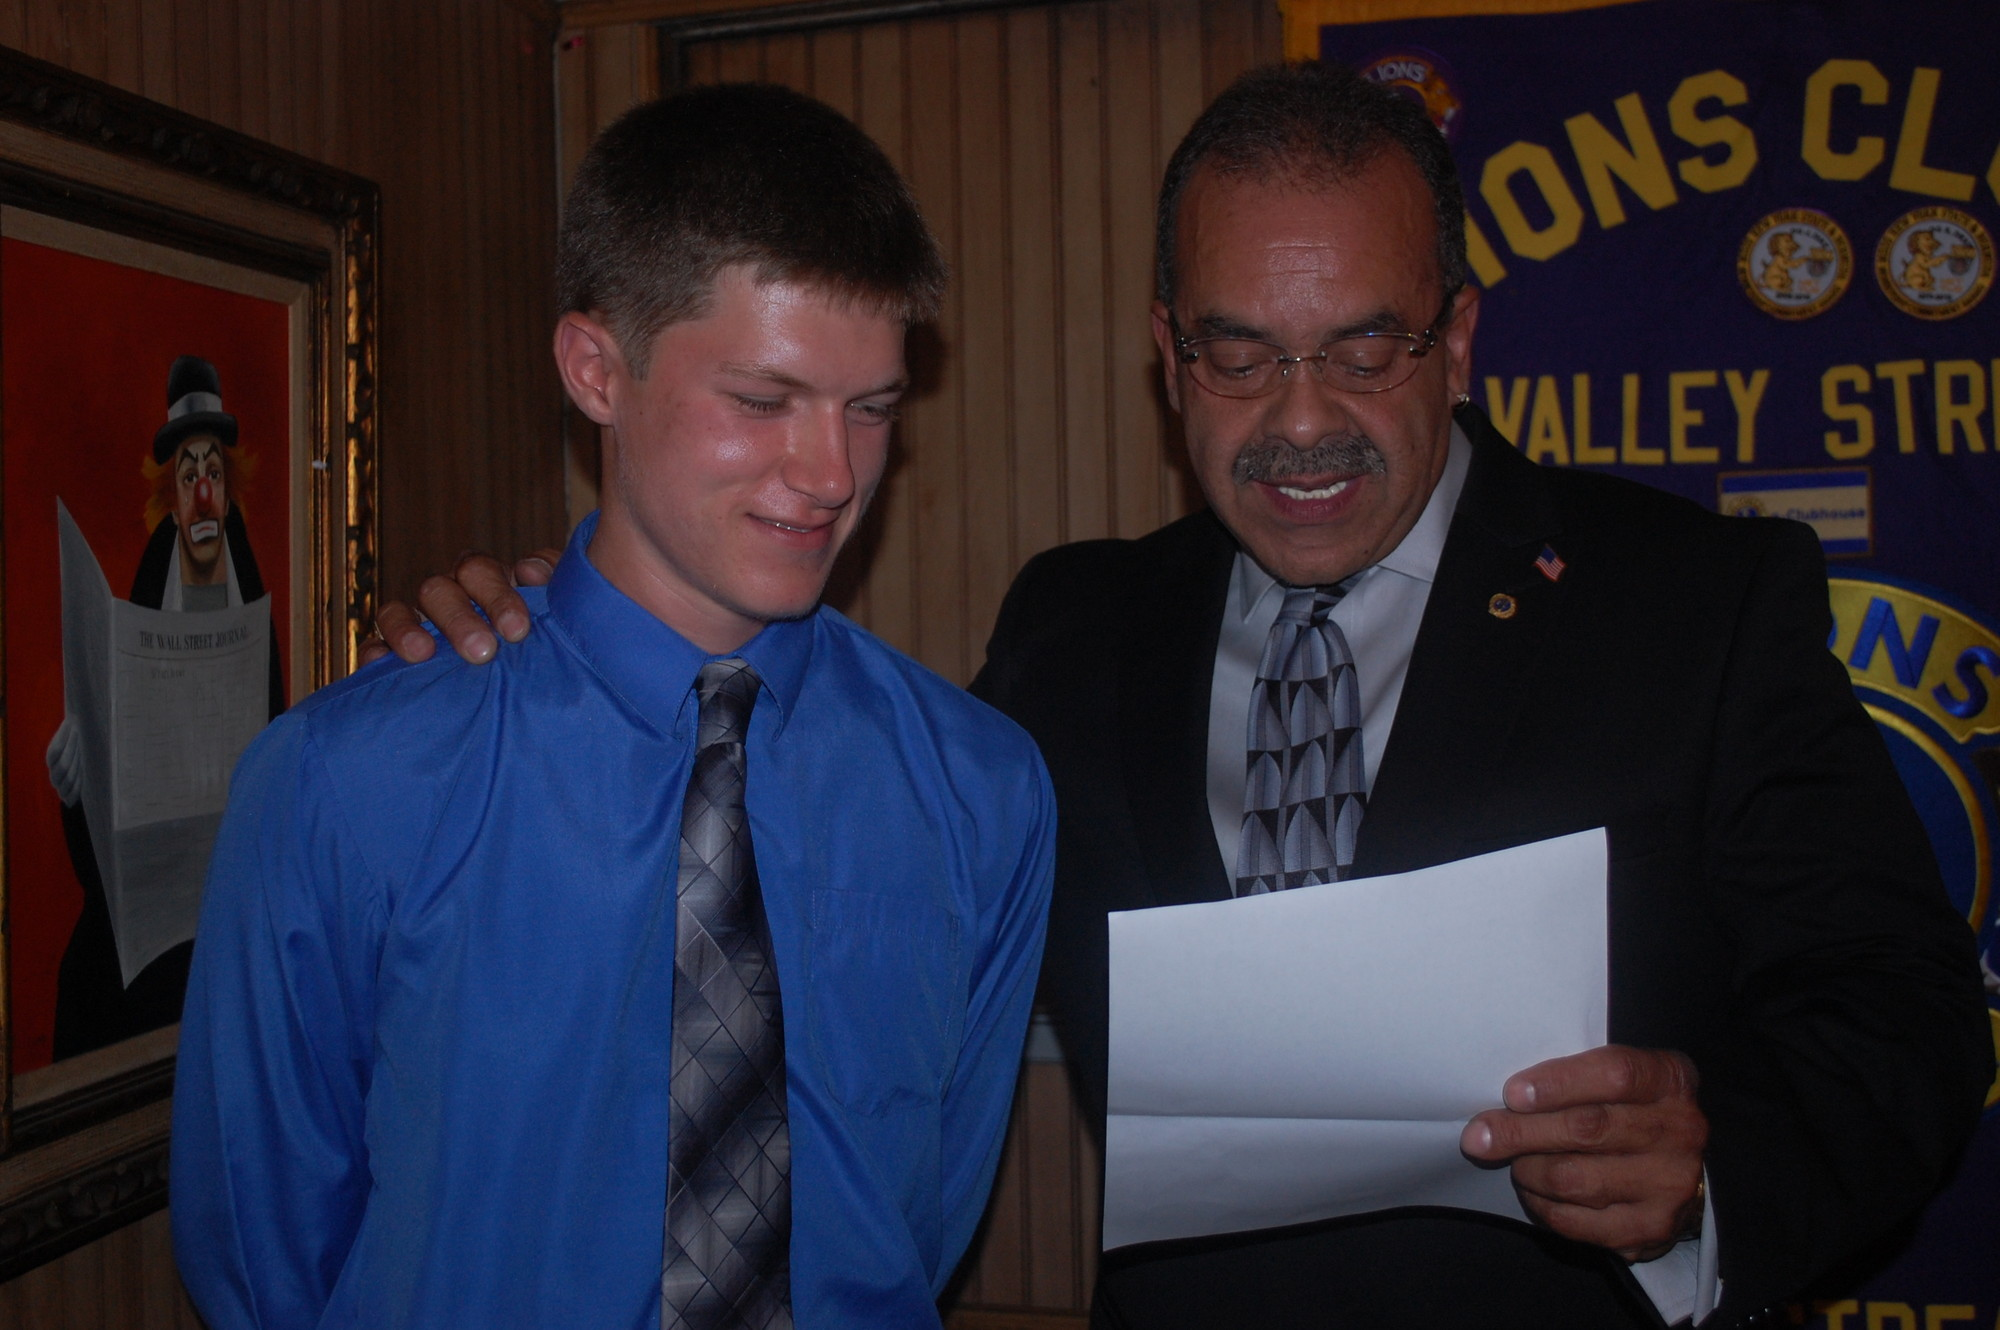 David Meltzer, left, listened as Valley Stream Lions Club President Jose Pastrana talked about the organization's scholarship program on Aug. 7. Meltzer went home with $1,000 for college expenses.